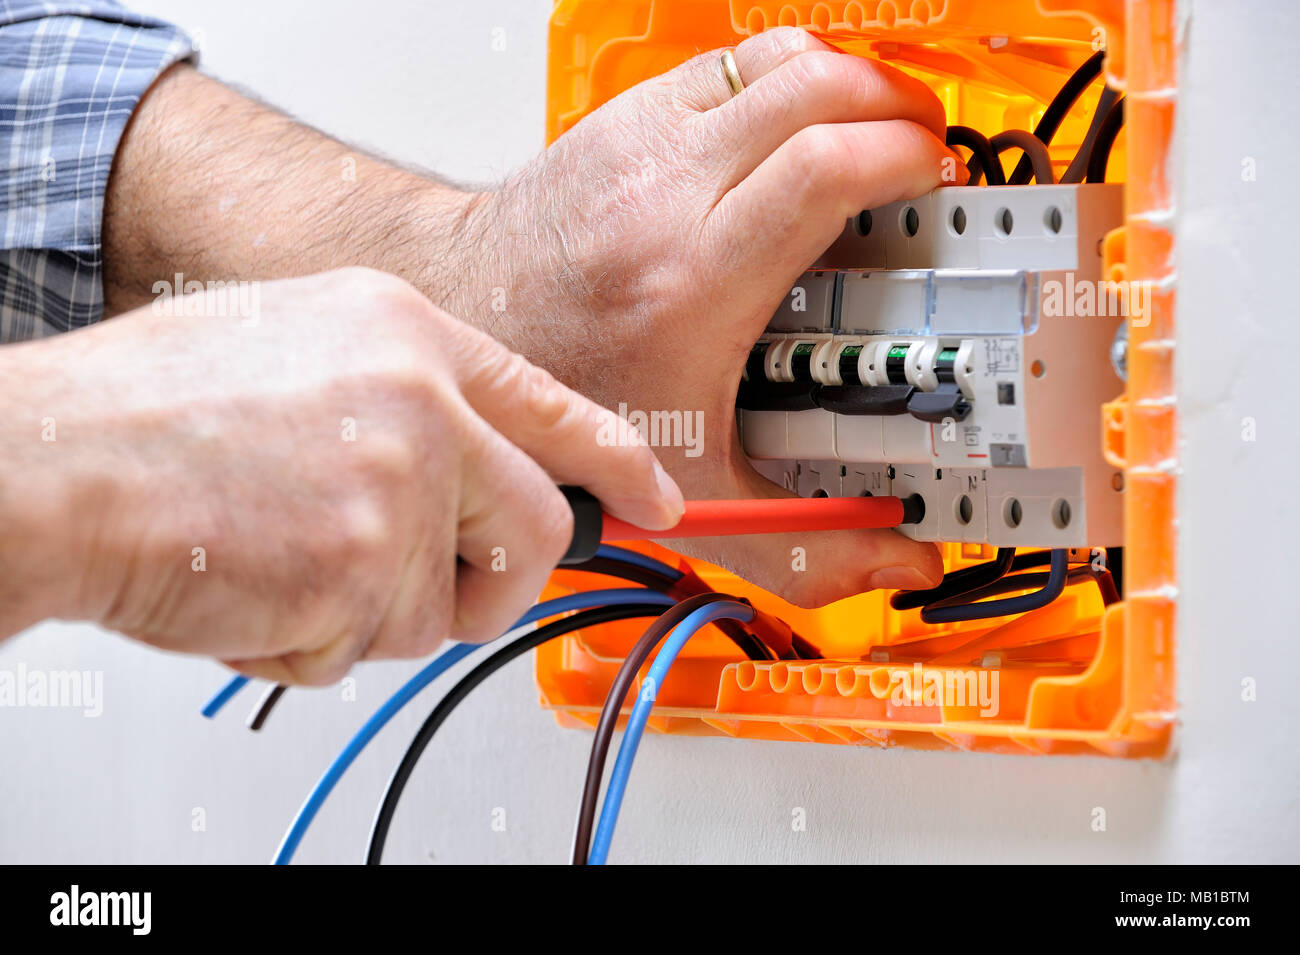 Electrician Technician Working On A Residential Electrical Panel Household Switch Wiring Fixing With Screwdriver The Cable In Magnetothermal